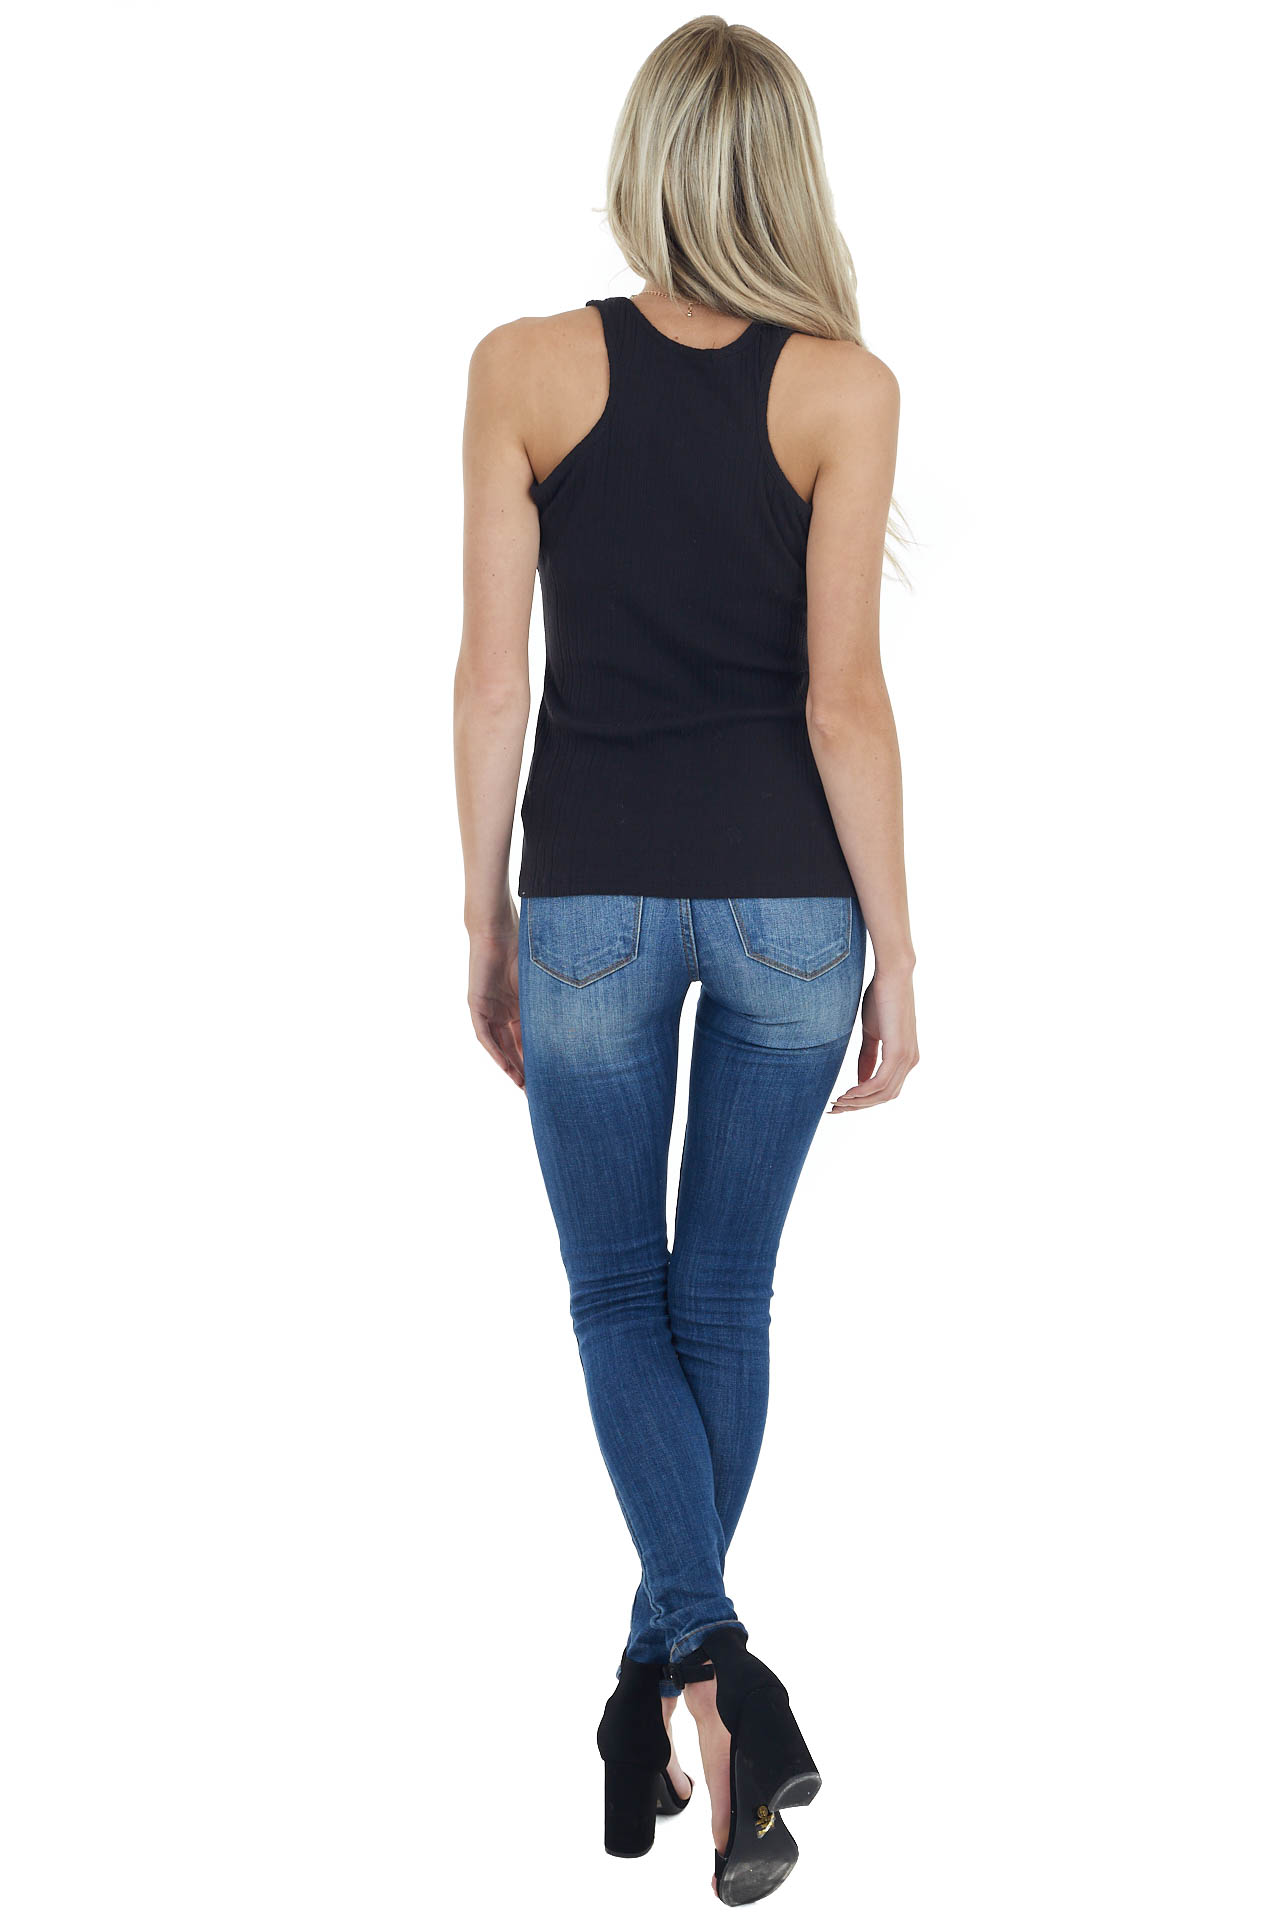 Black Sleeveless Ribbed Knit Top with Round Neckline